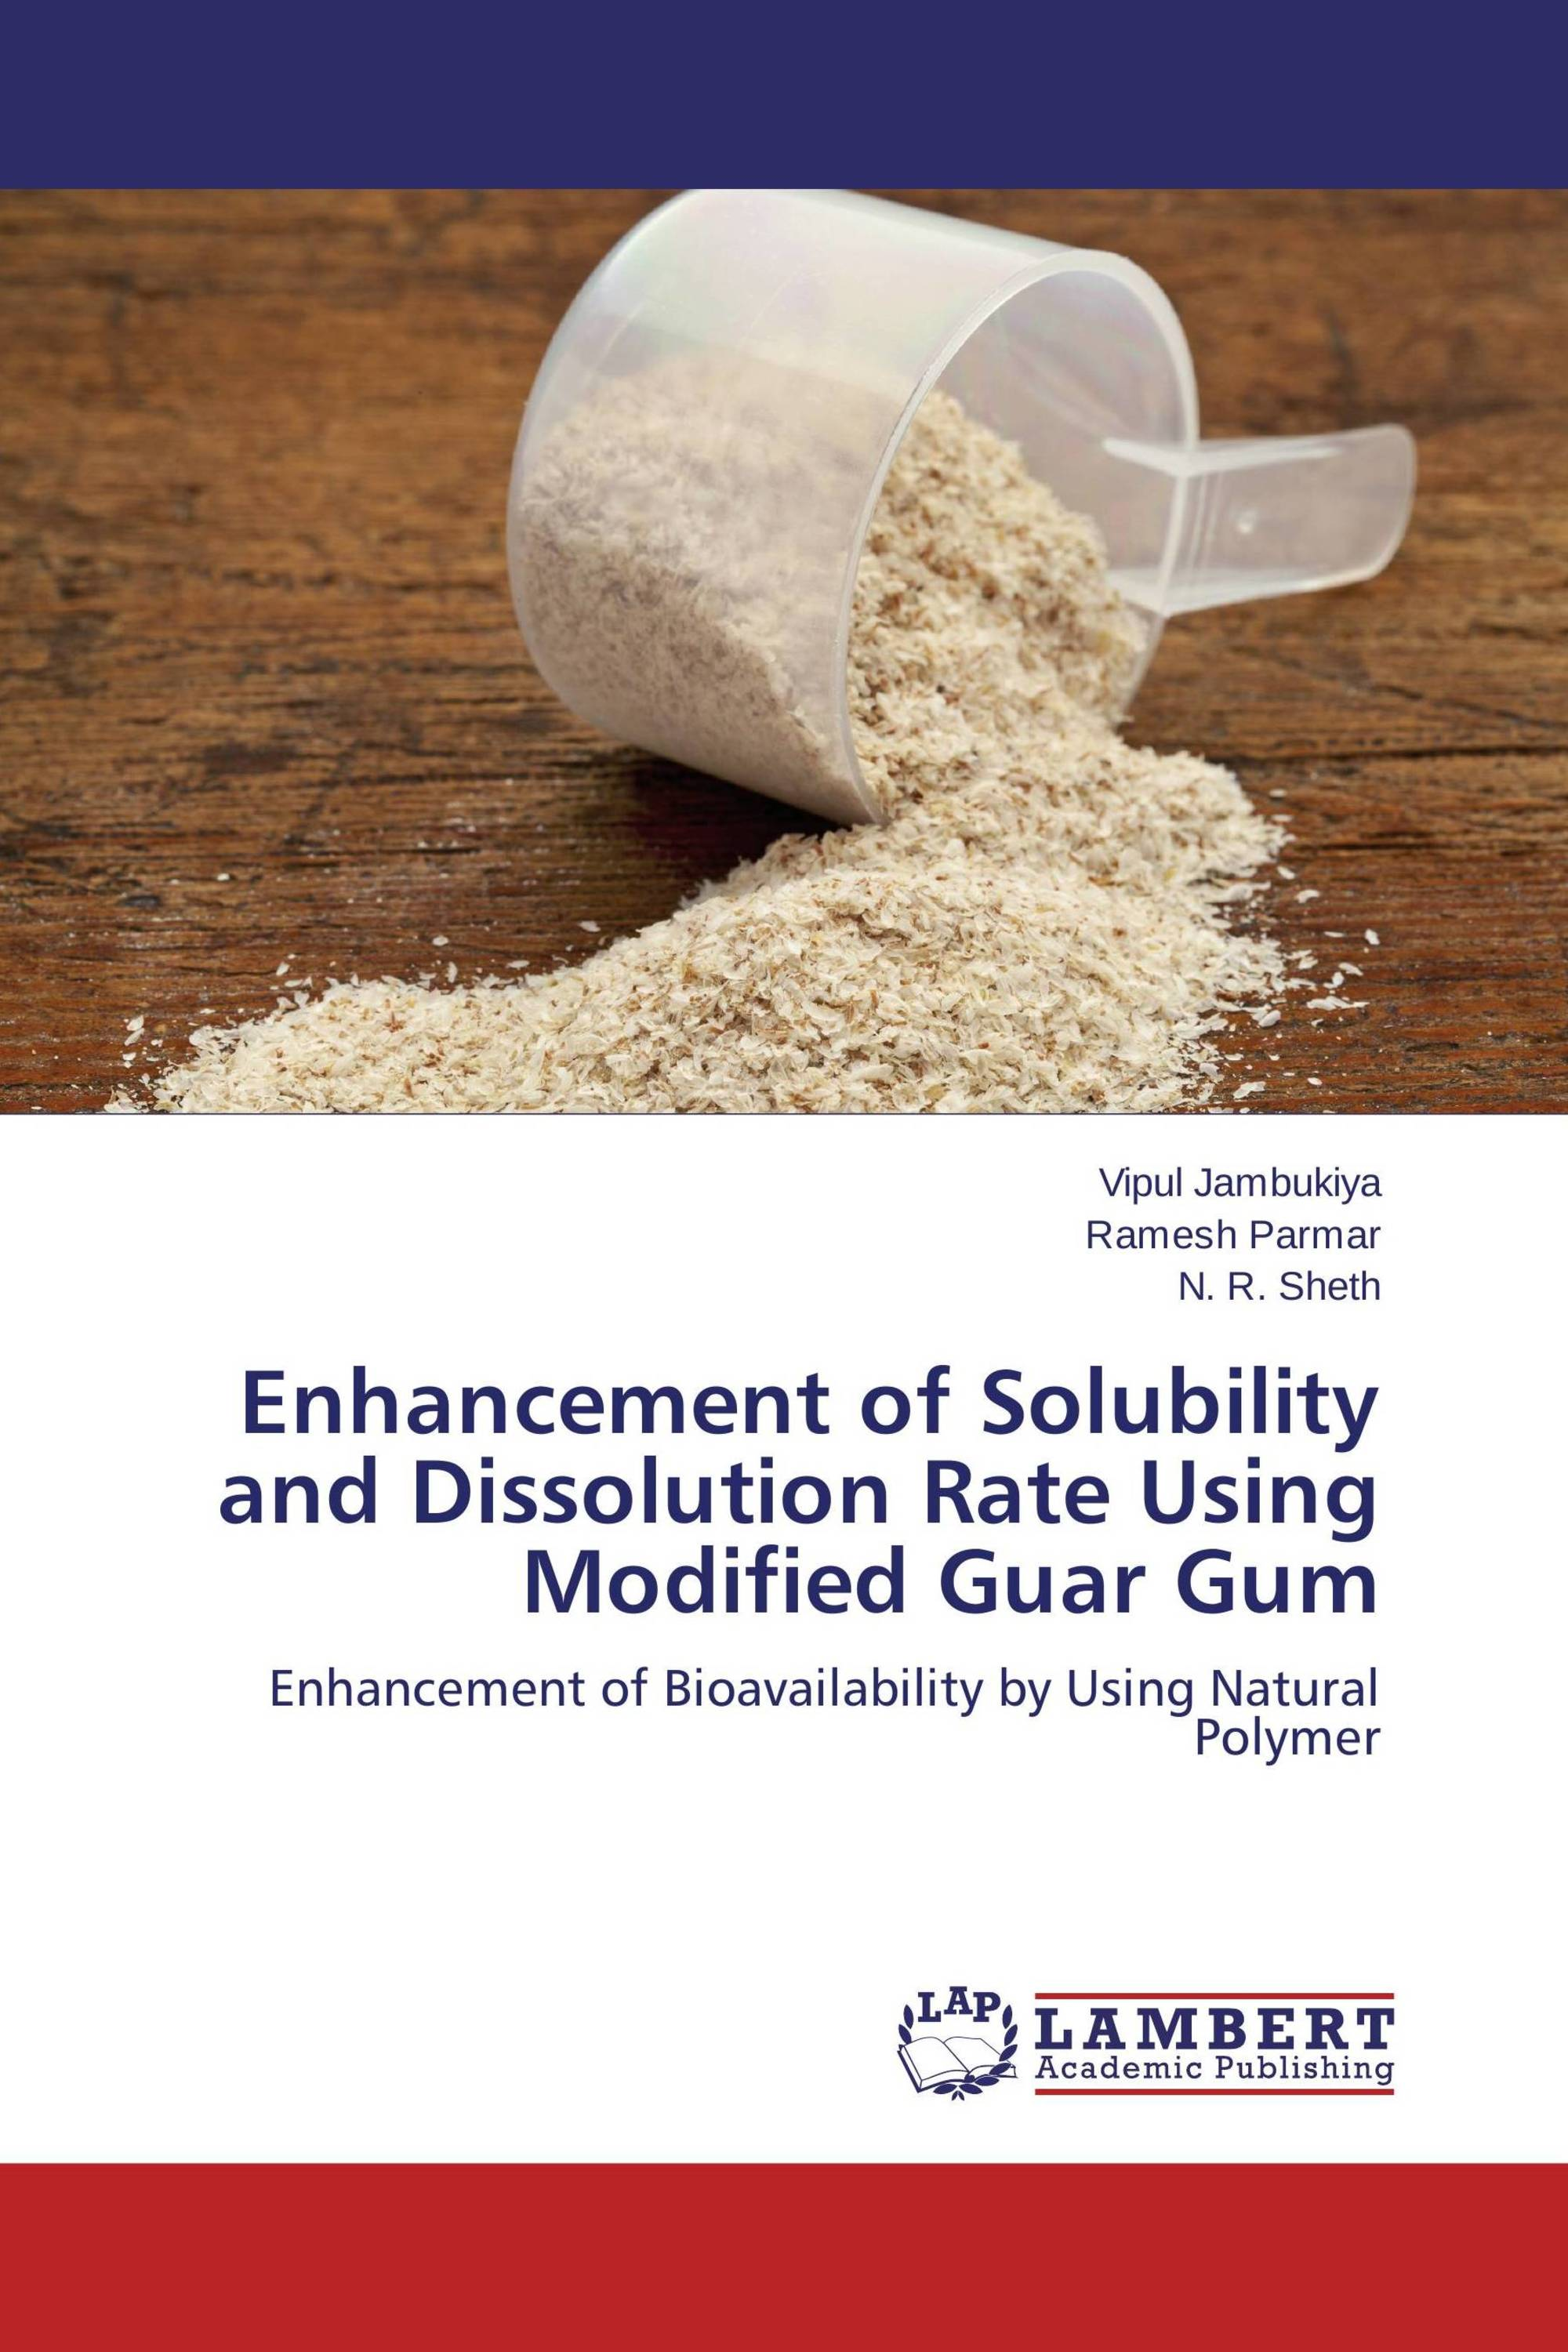 Enhancement of Solubility and Dissolution Rate Using